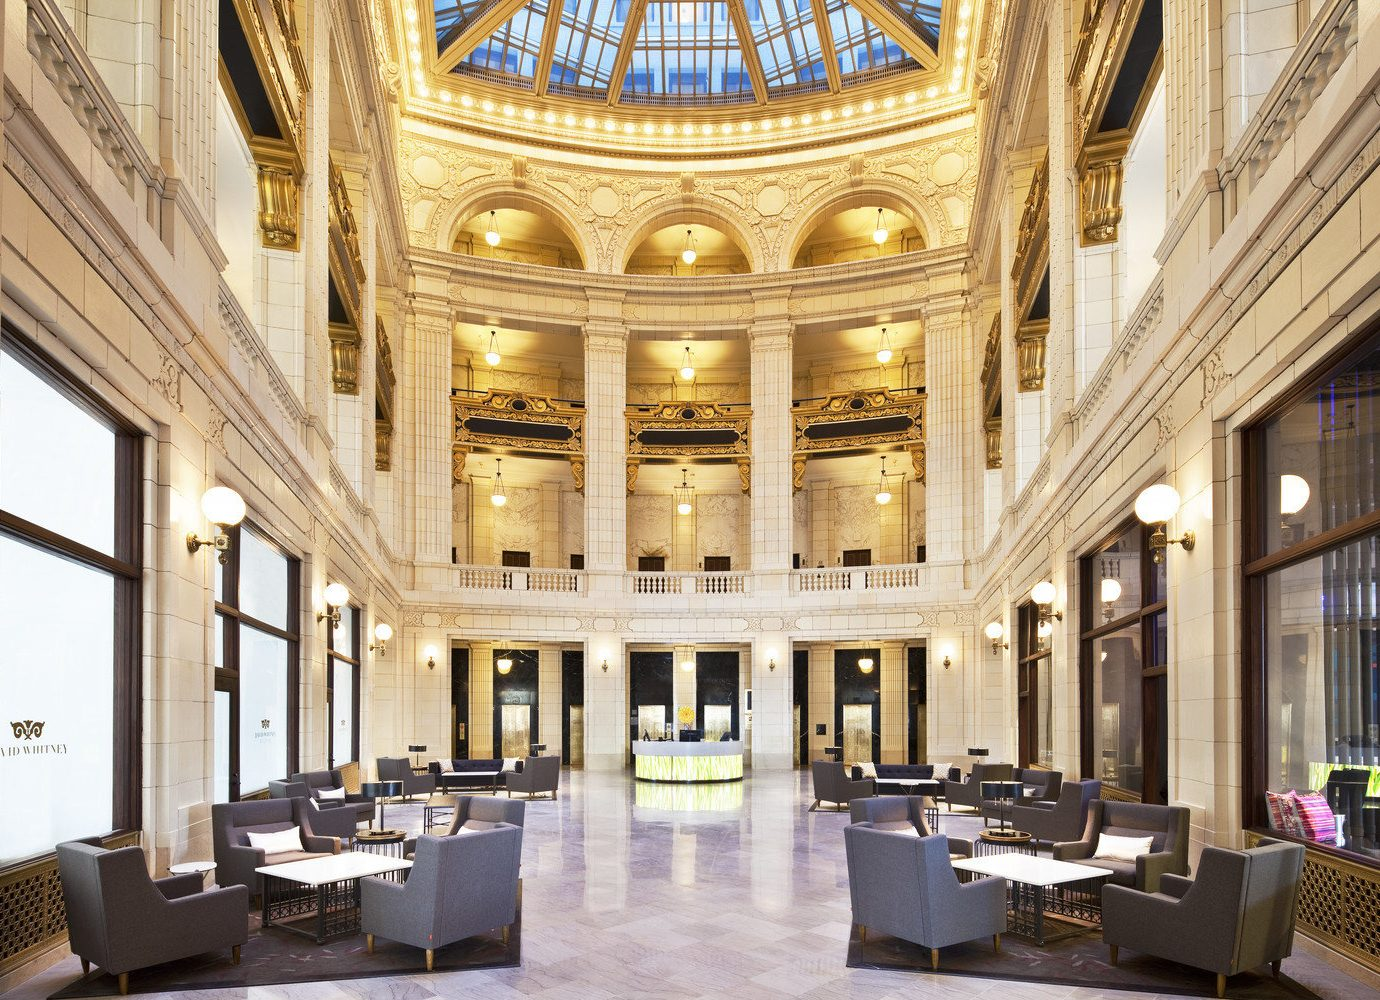 Trip Ideas building indoor Lobby ceiling interior design function hall daylighting hall estate